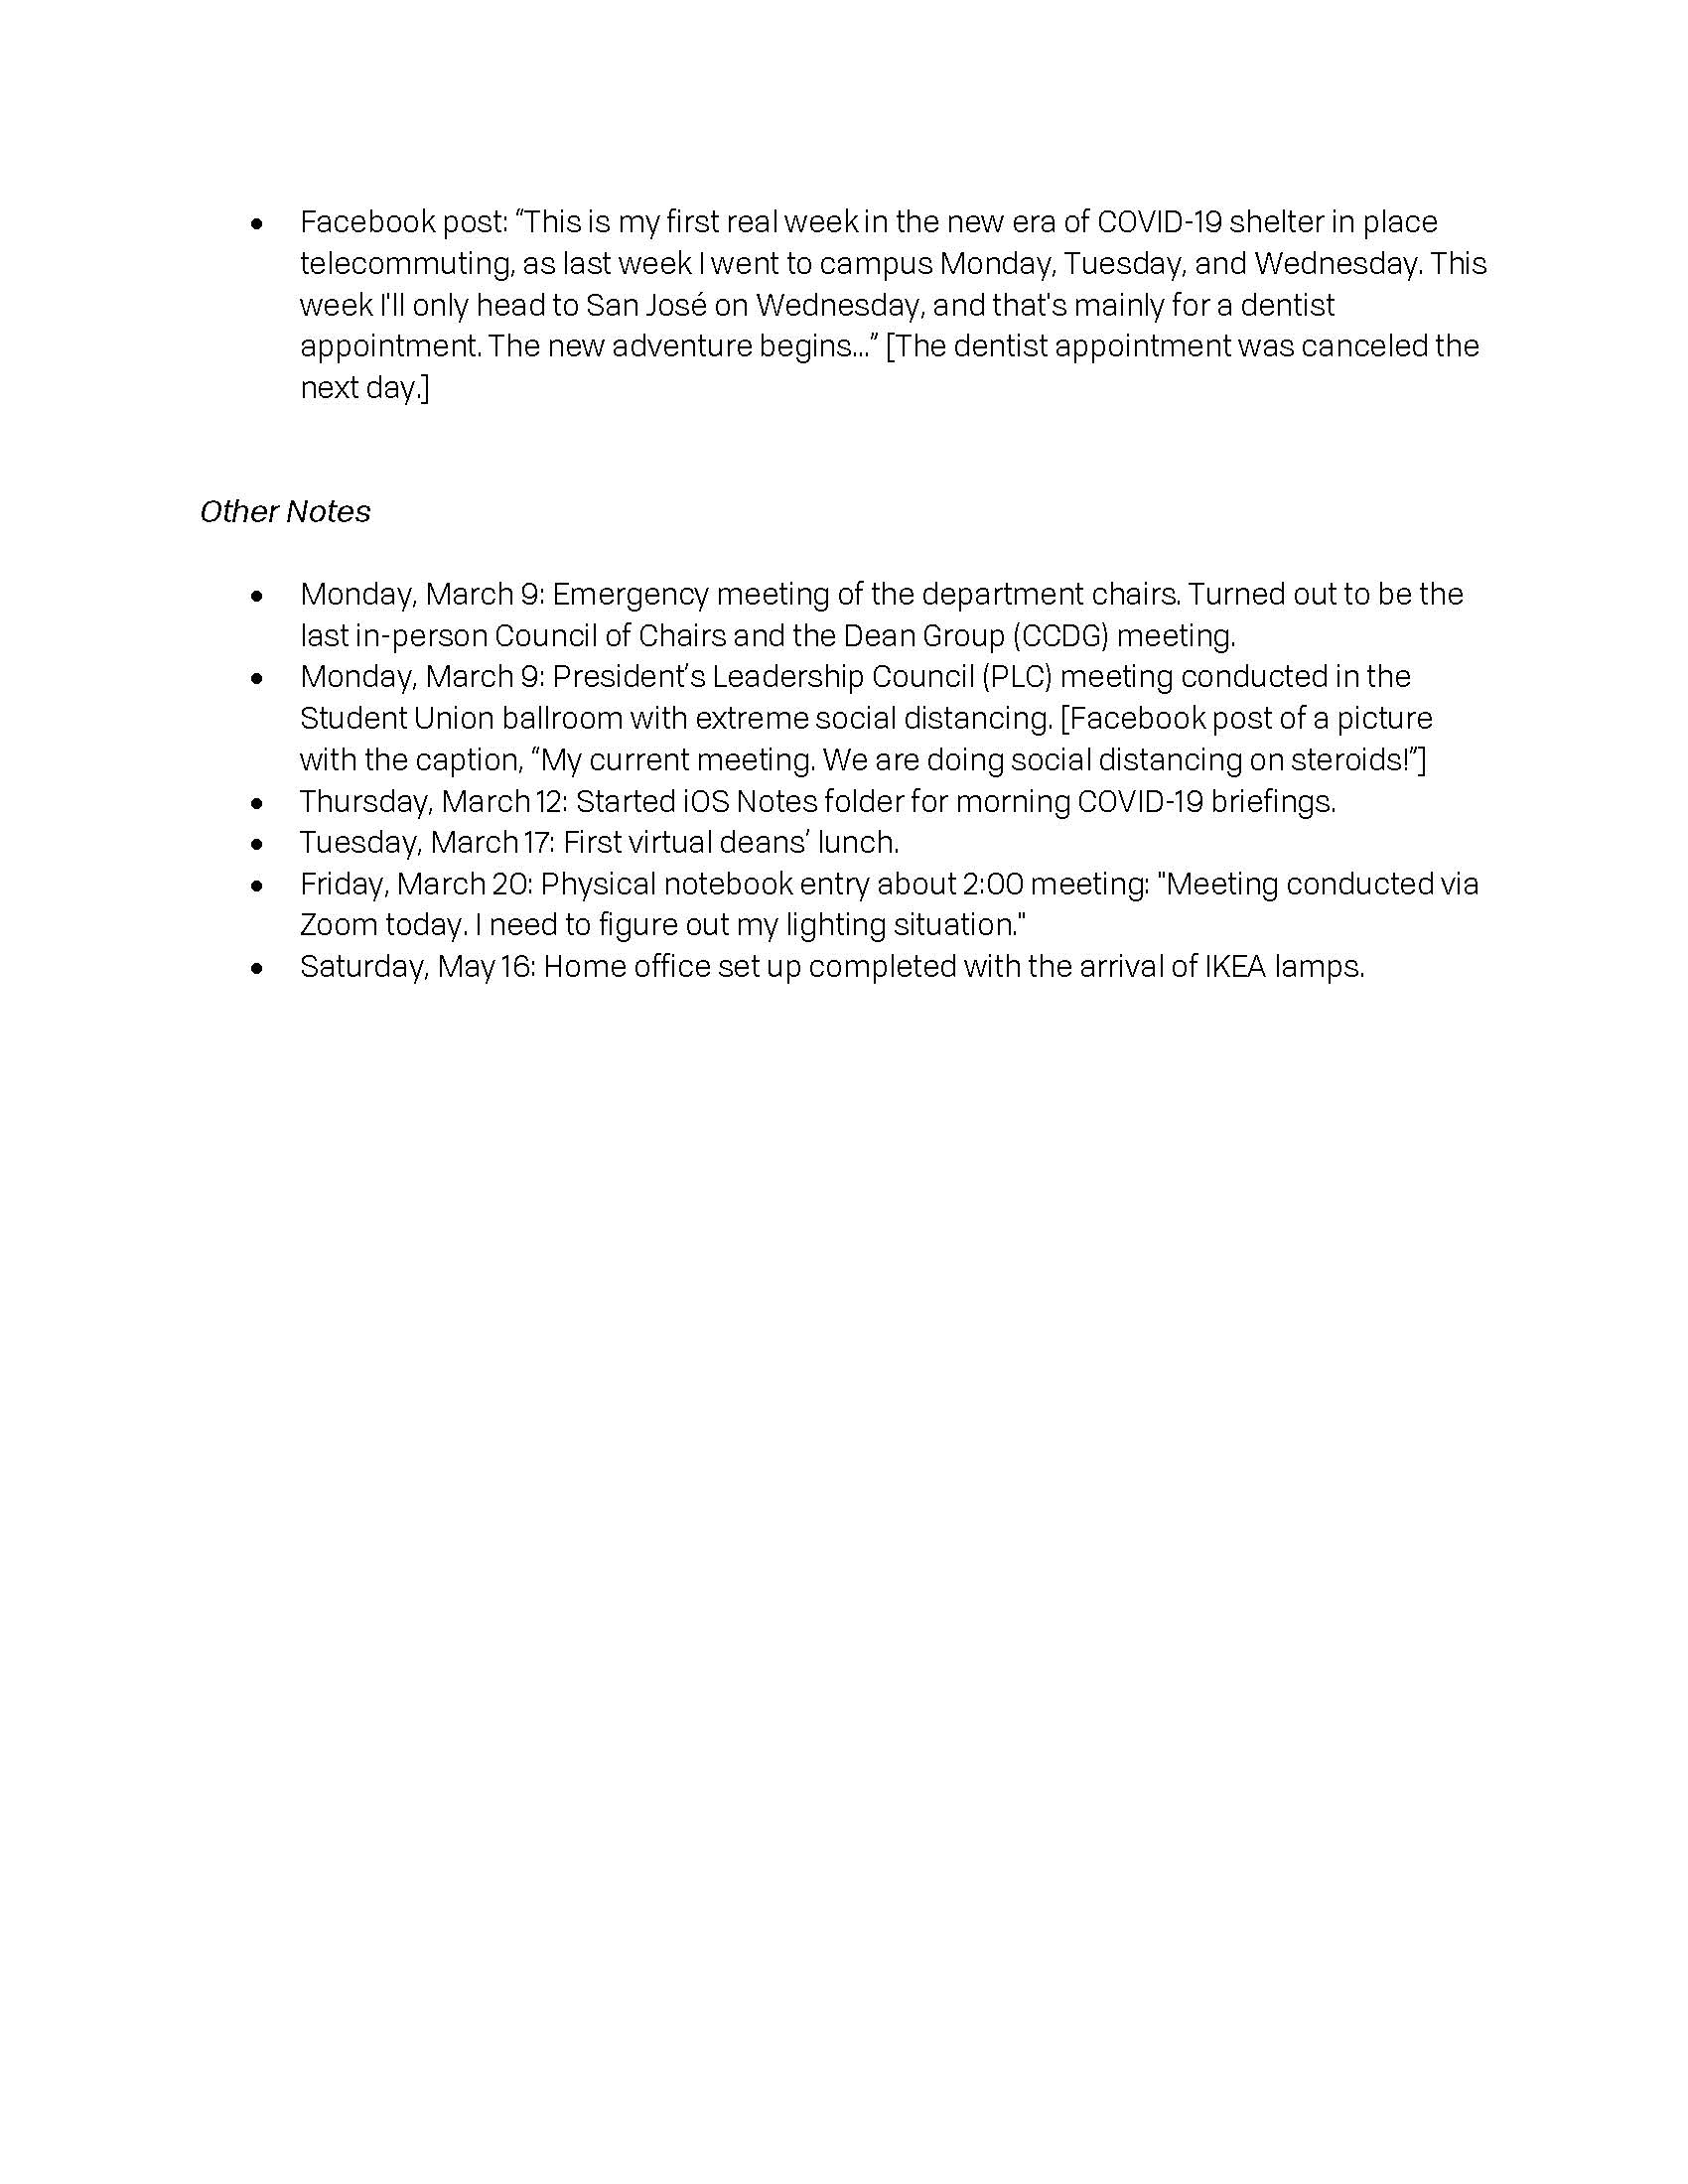 Page 3 of a textual document describing the author's COVID-19 experiences.